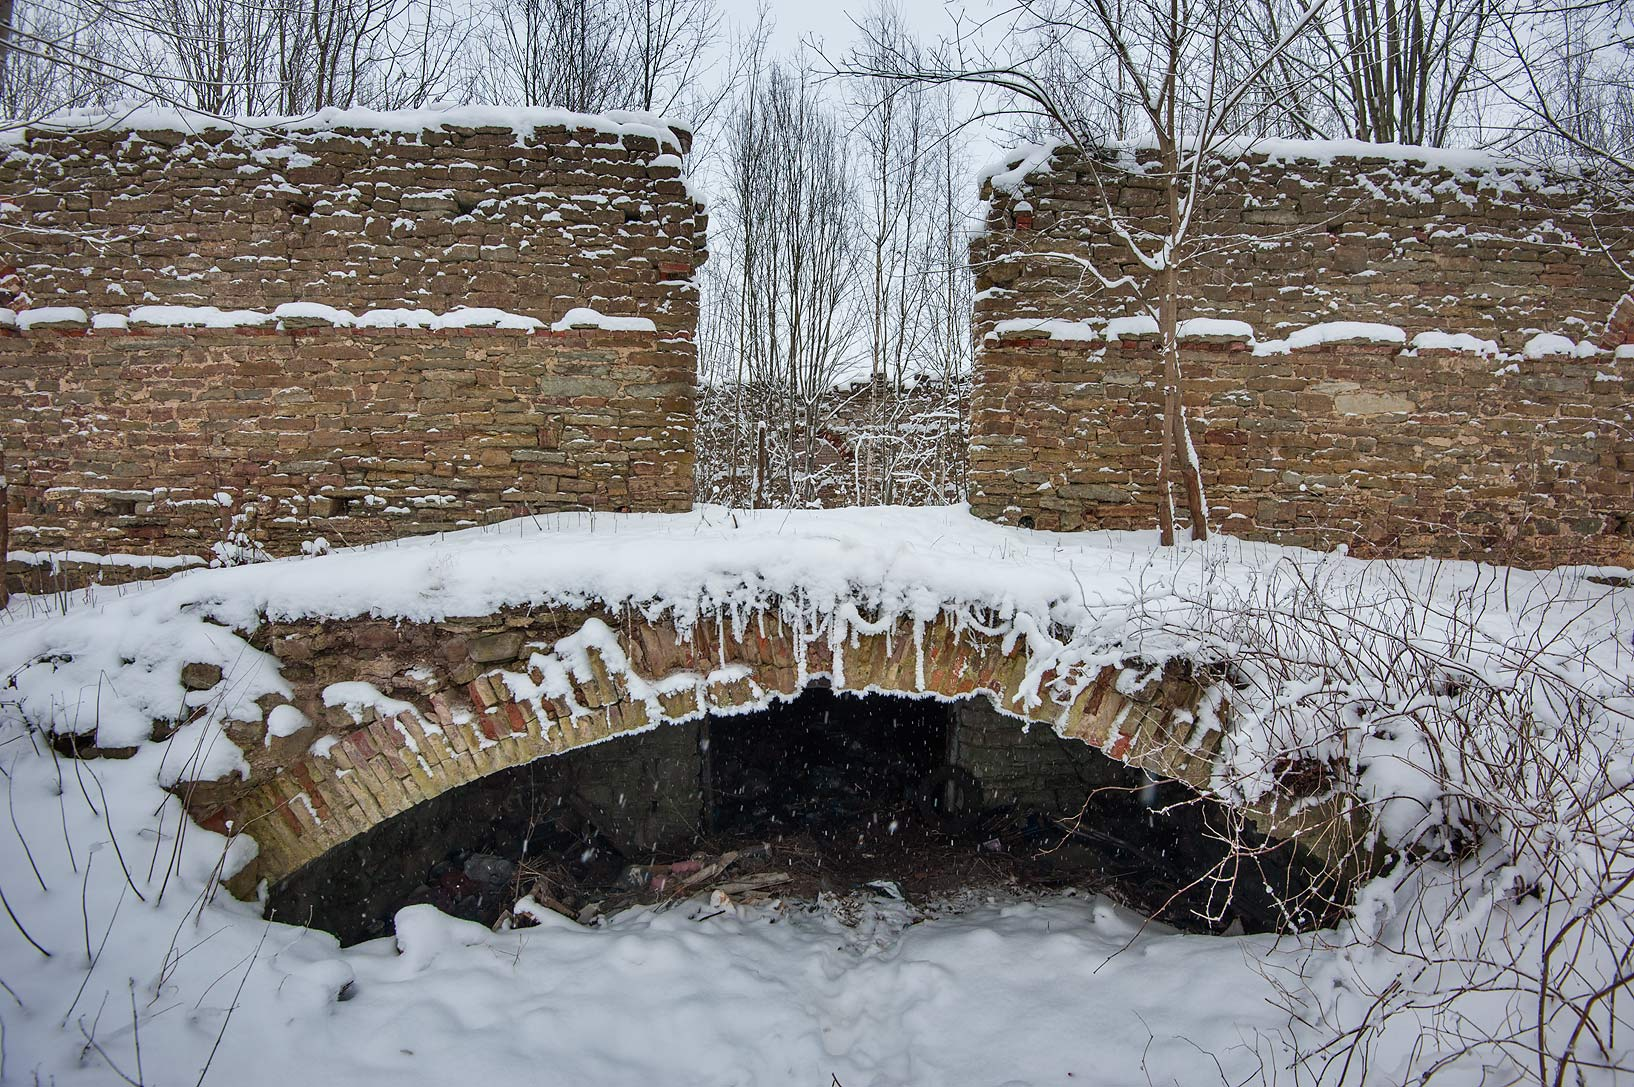 Stone arch in Kotly Estate. Kingisepp Region of Leningrad District, Russia